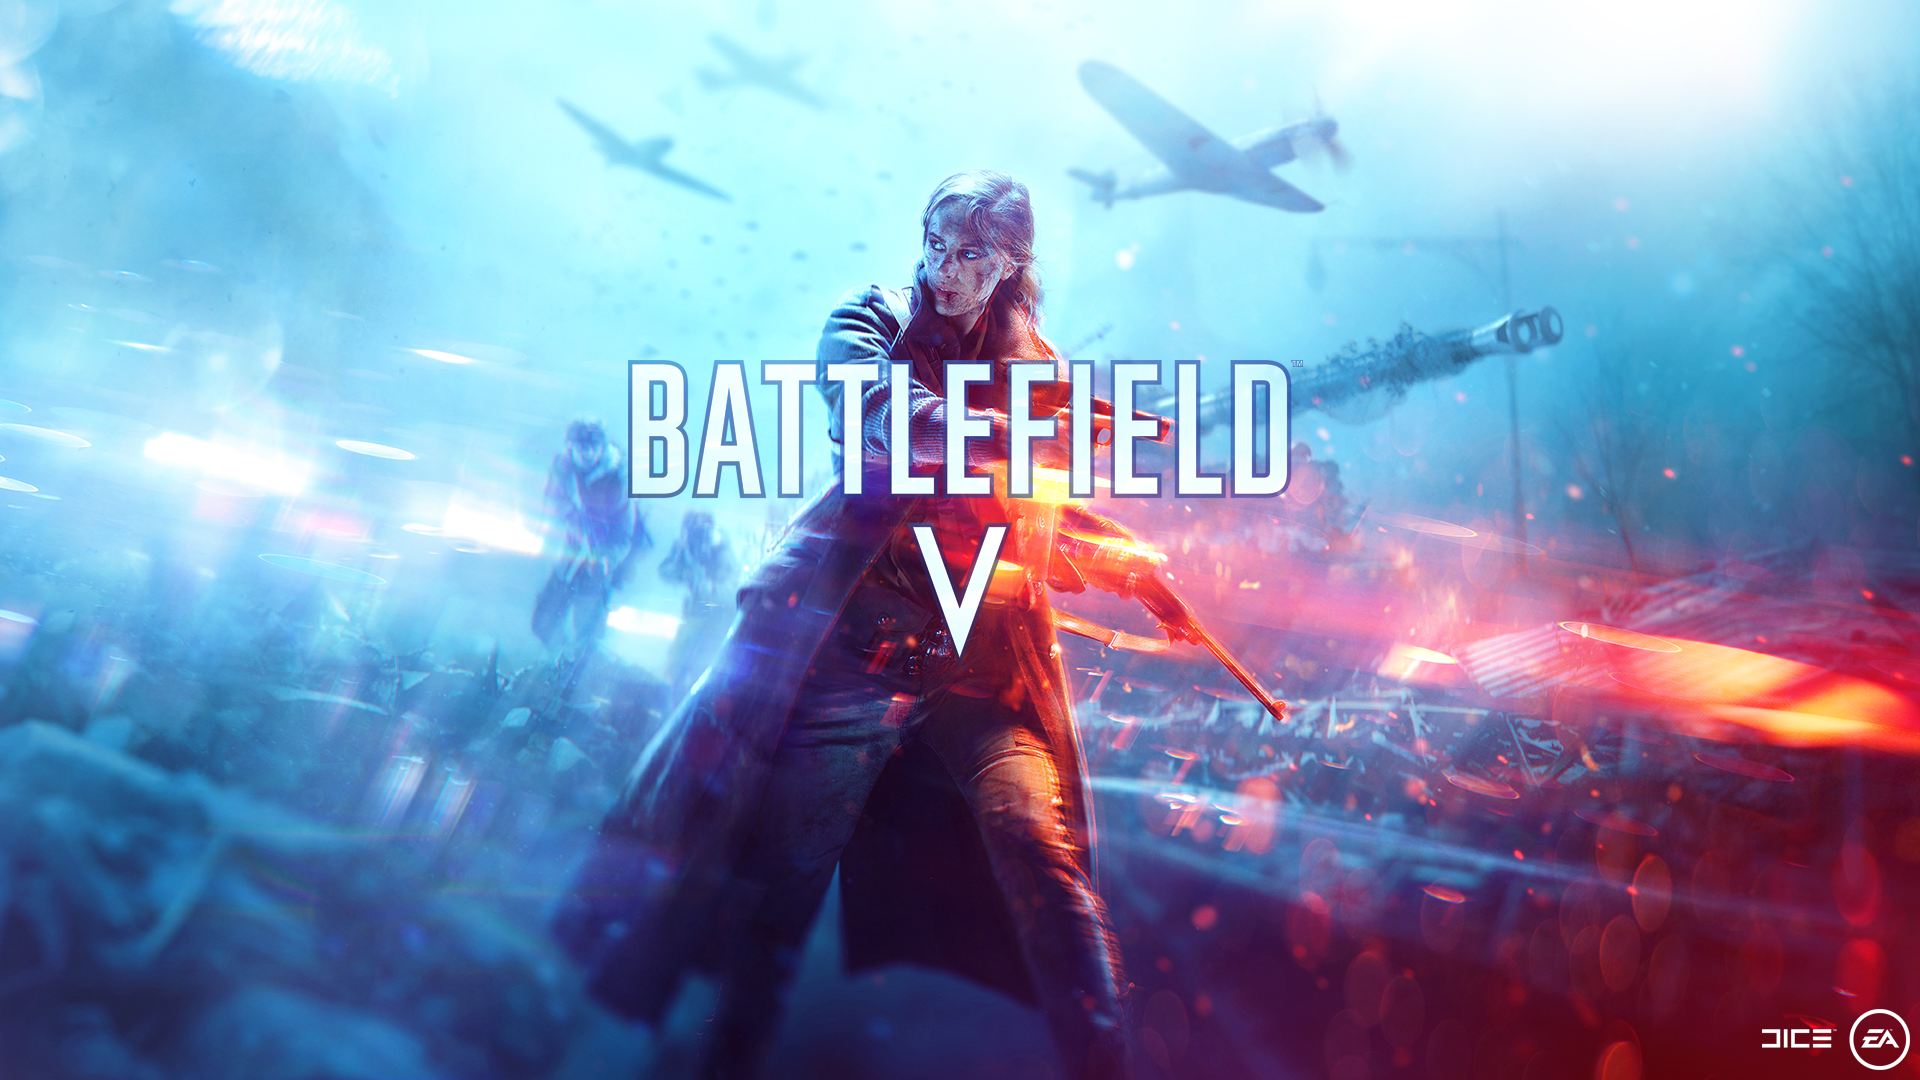 Dc5n United States Software In English Created At 2018 08 22 0235 424 X 253 Png 19kb Open Circuit And Short Test On Transformer Battlefield 5 Company Trailer Showcases Combat Roles Customisation 205 12